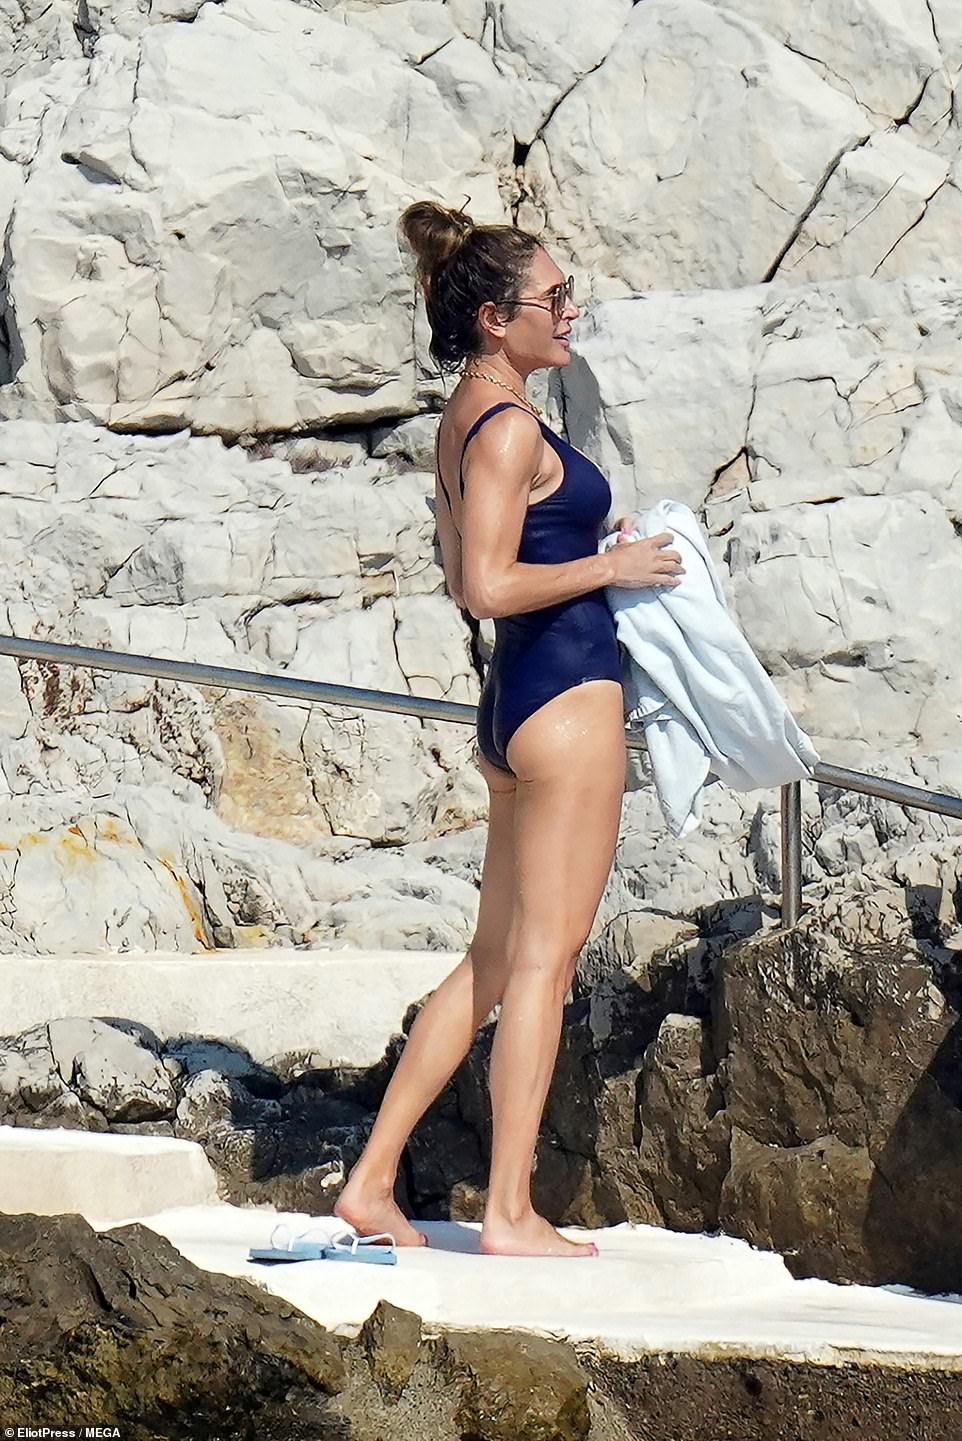 Gorgeous: Ayda's lithe figure was unmissable as she dried off and called back to her friends to chat from the water's edge